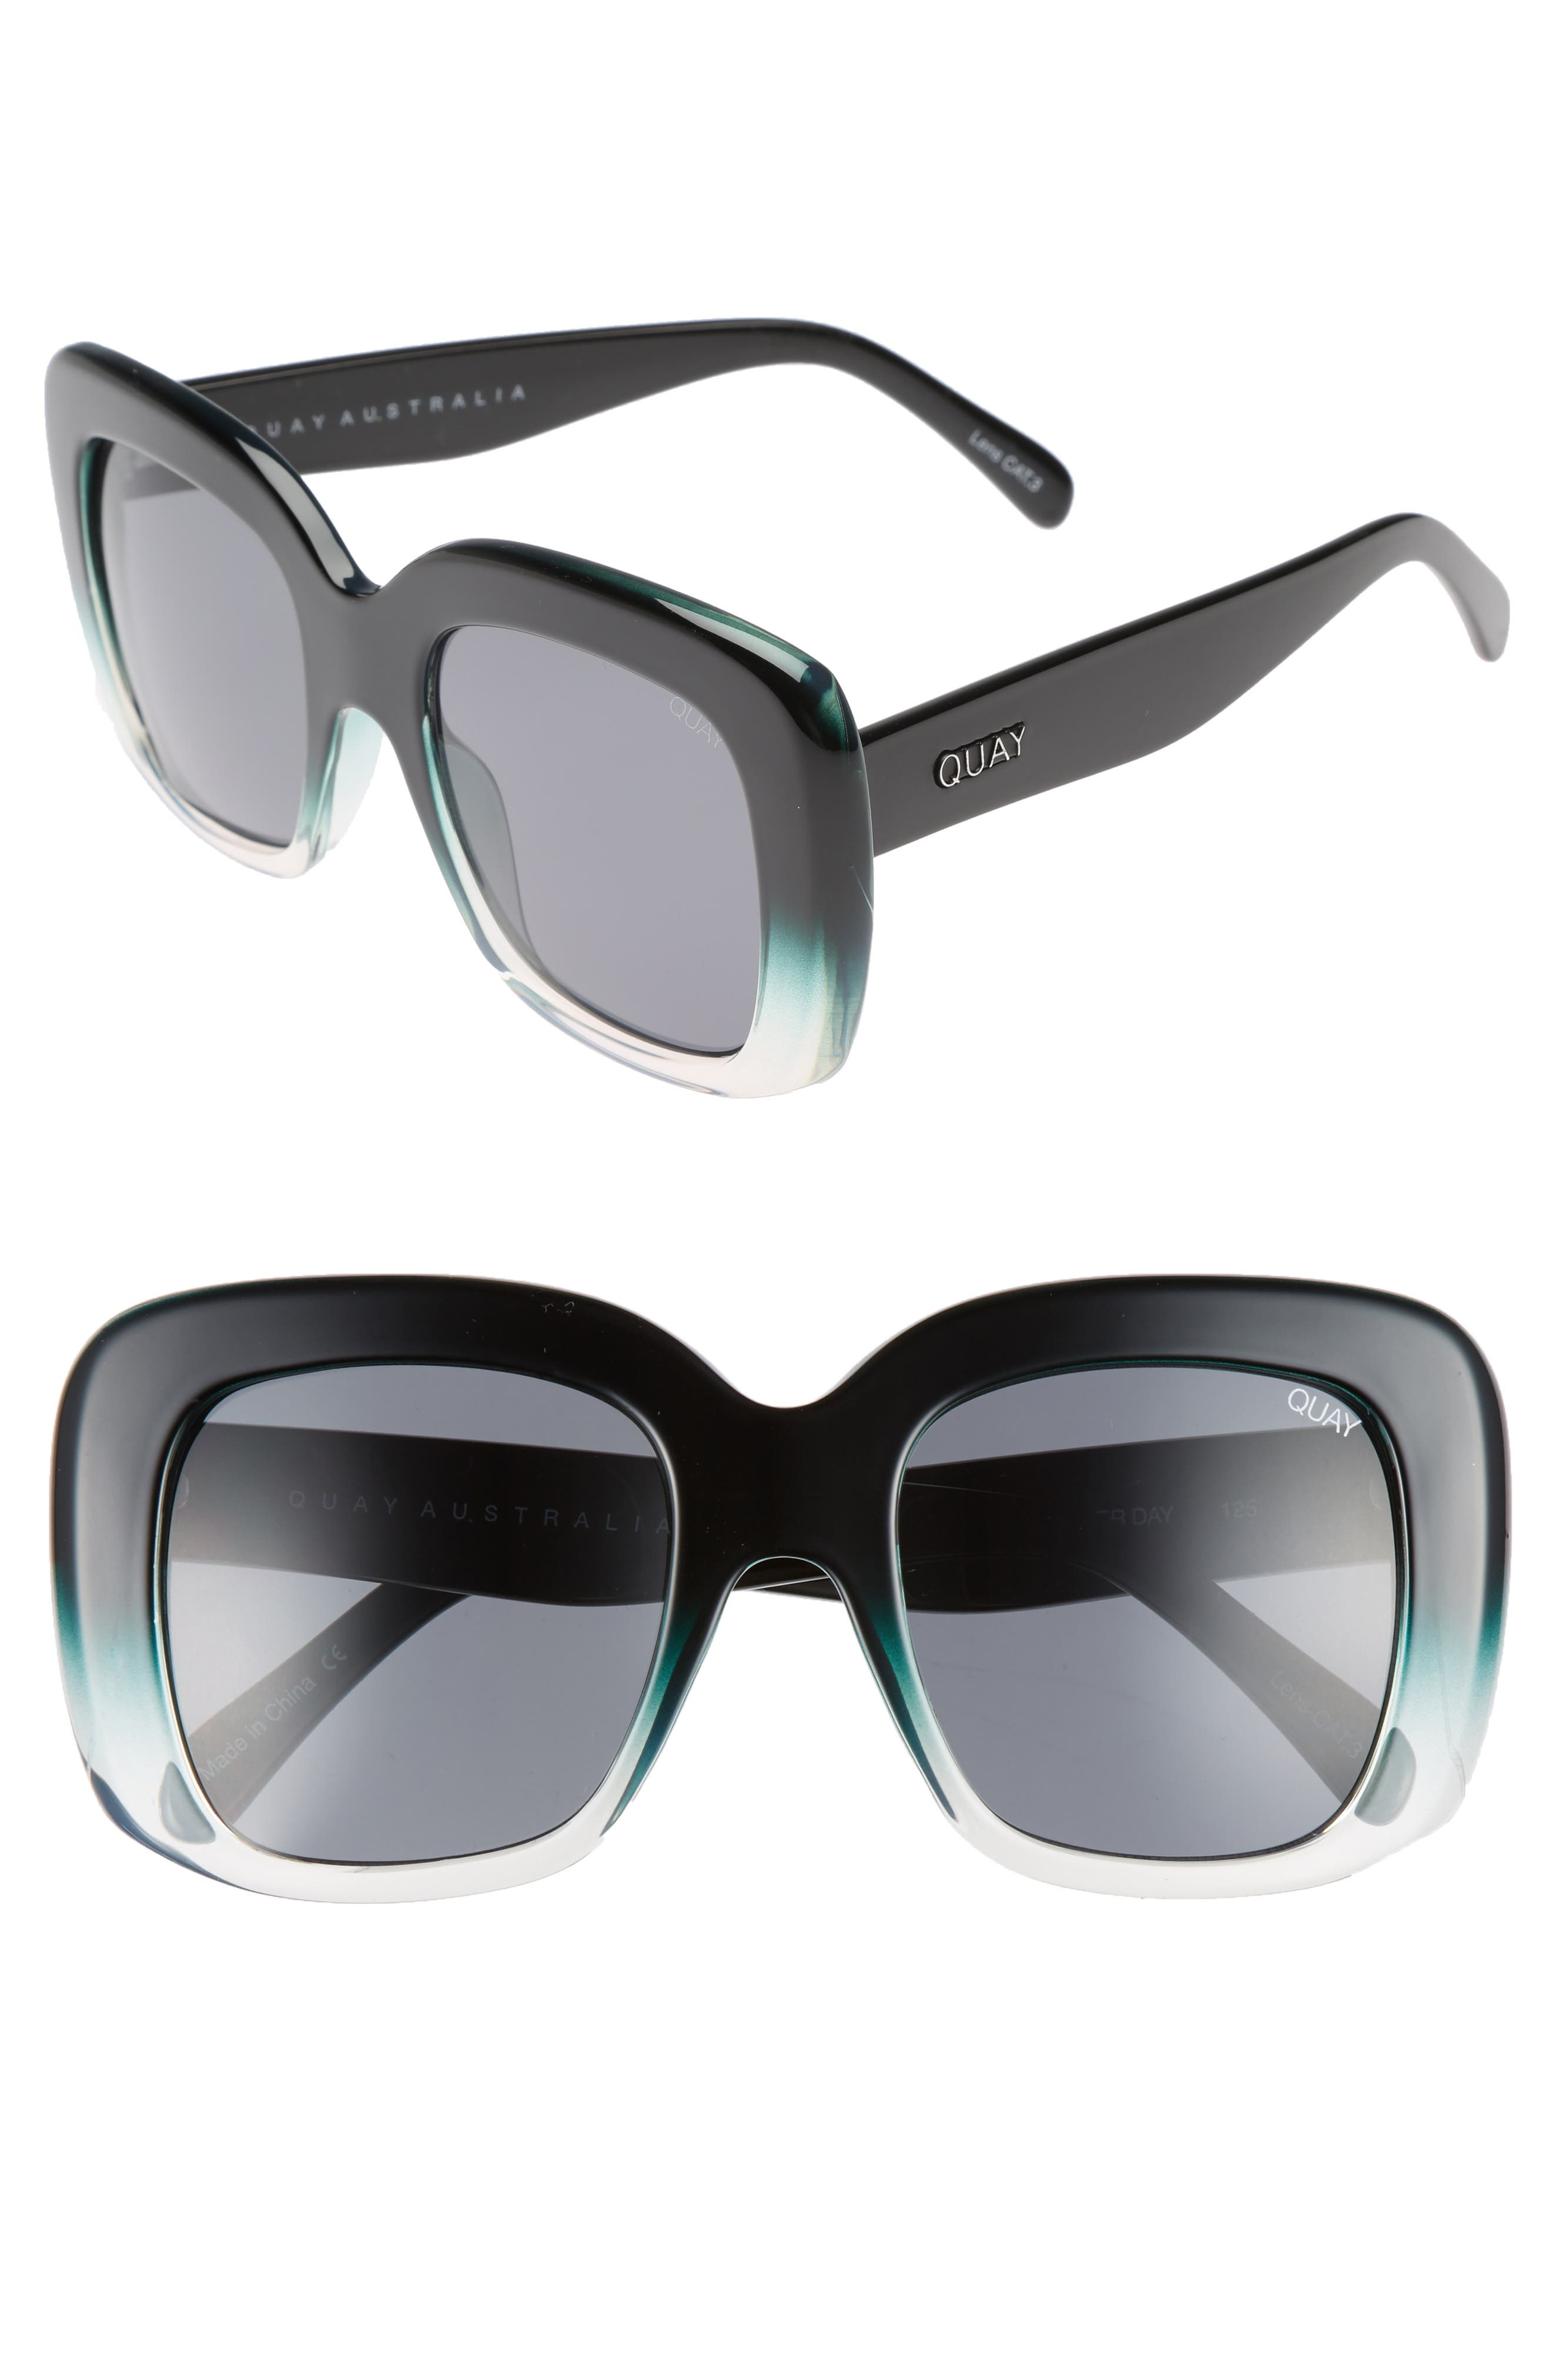 Day After Day 53mm Square Sunglasses,                         Main,                         color, Black/ Green Smoke